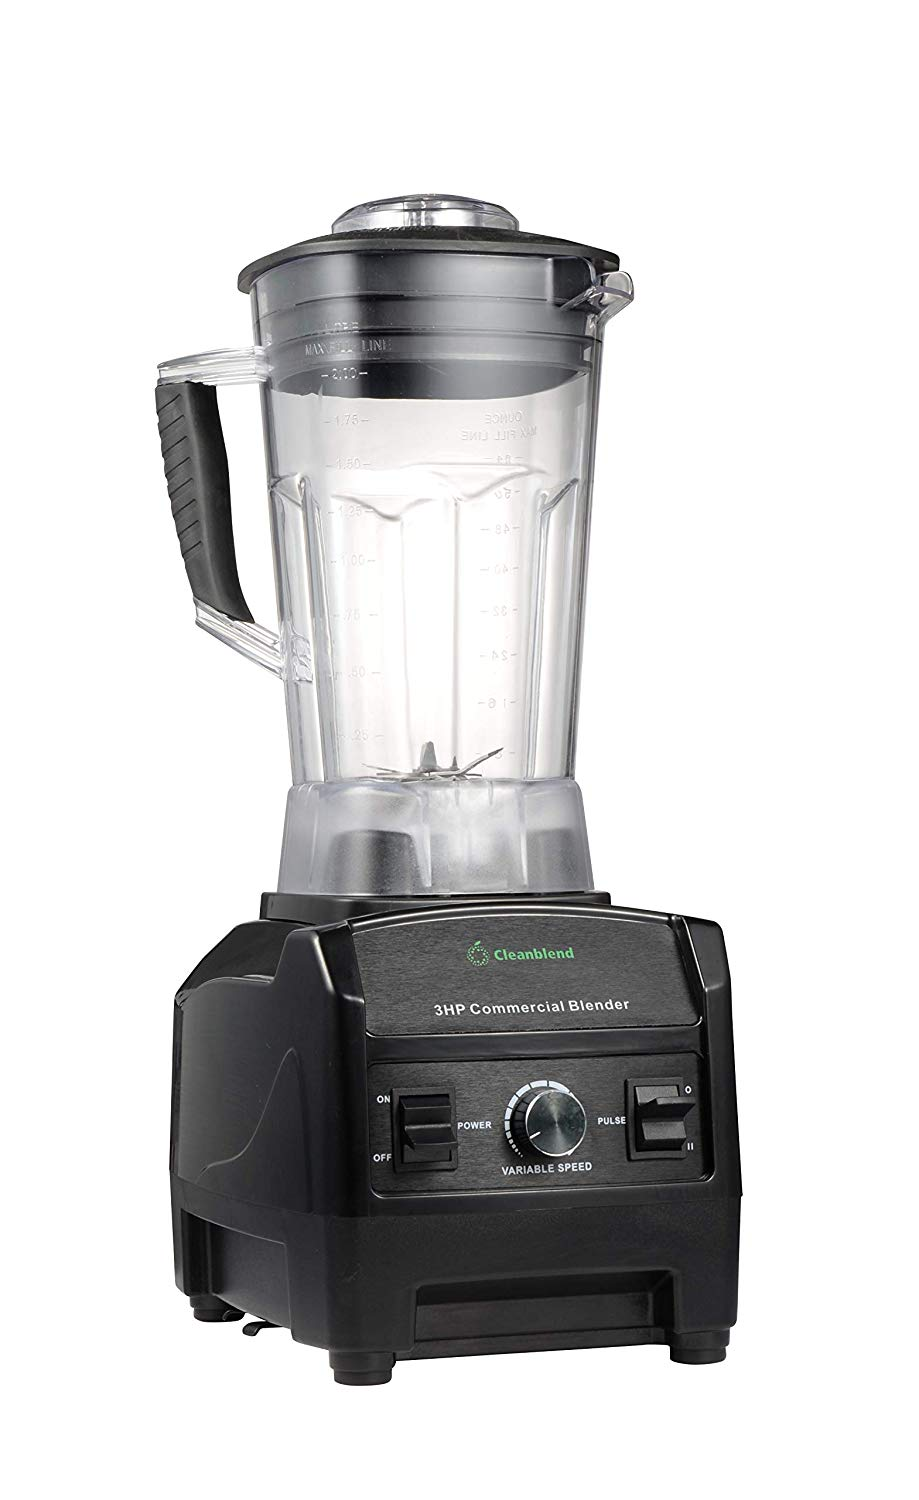 Cleanblend blender - 2001